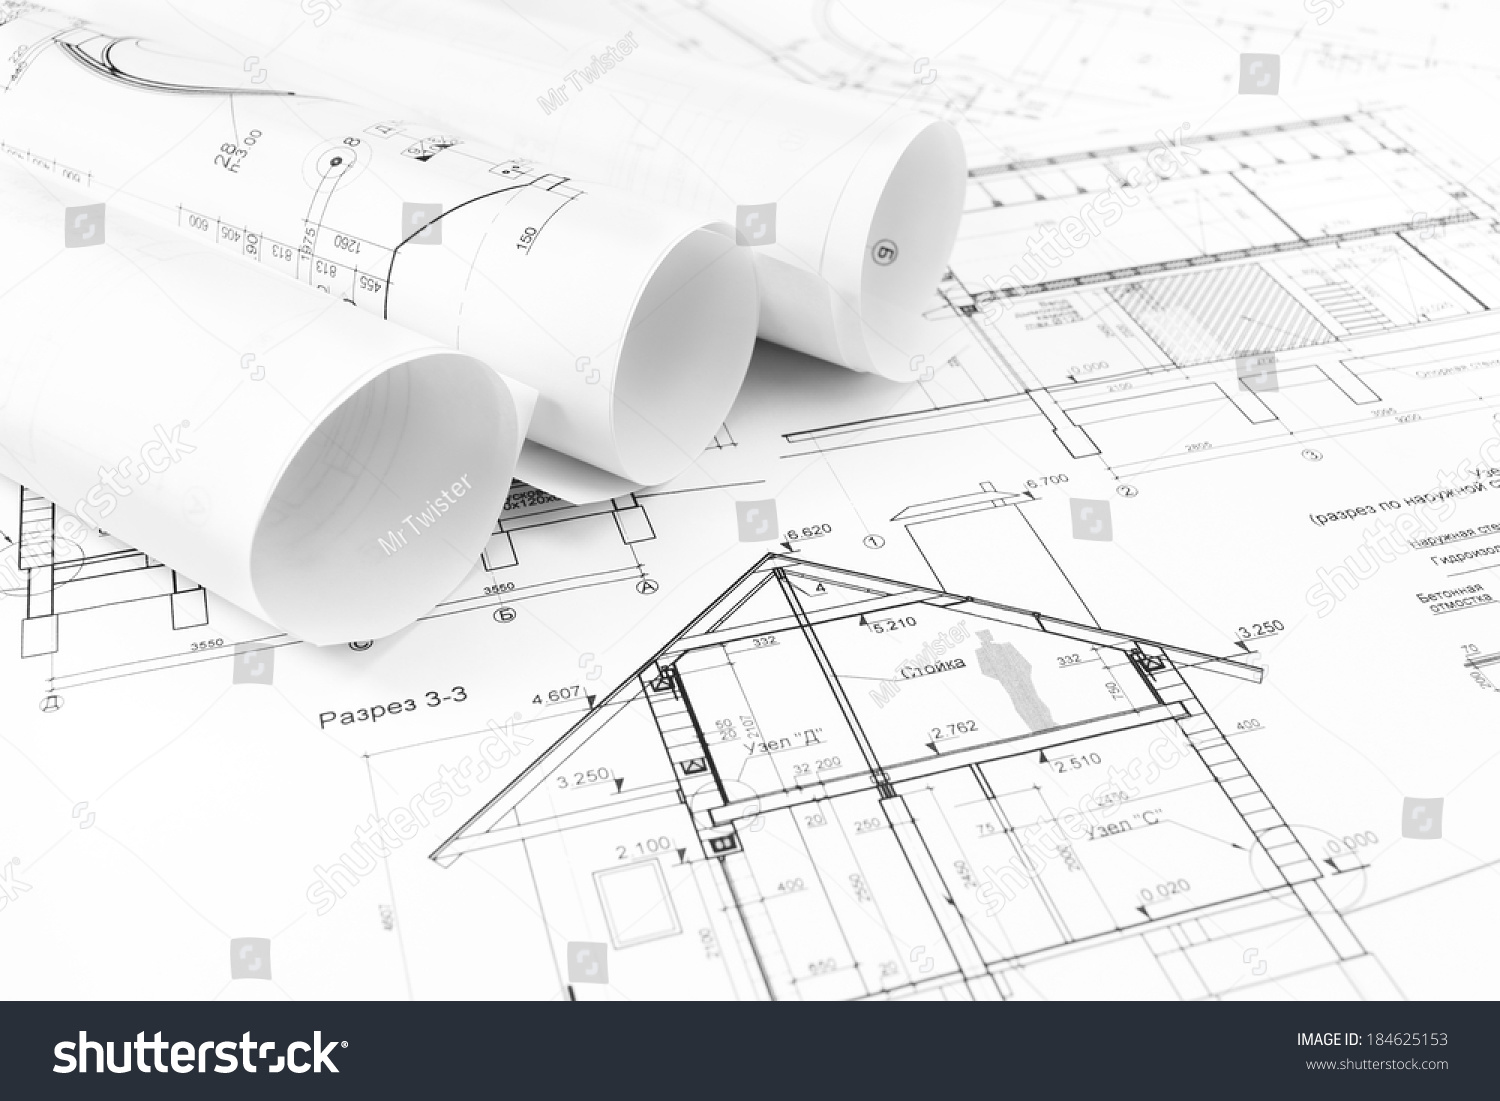 Rolls Architectural House Plans Engineering Blueprints Stock